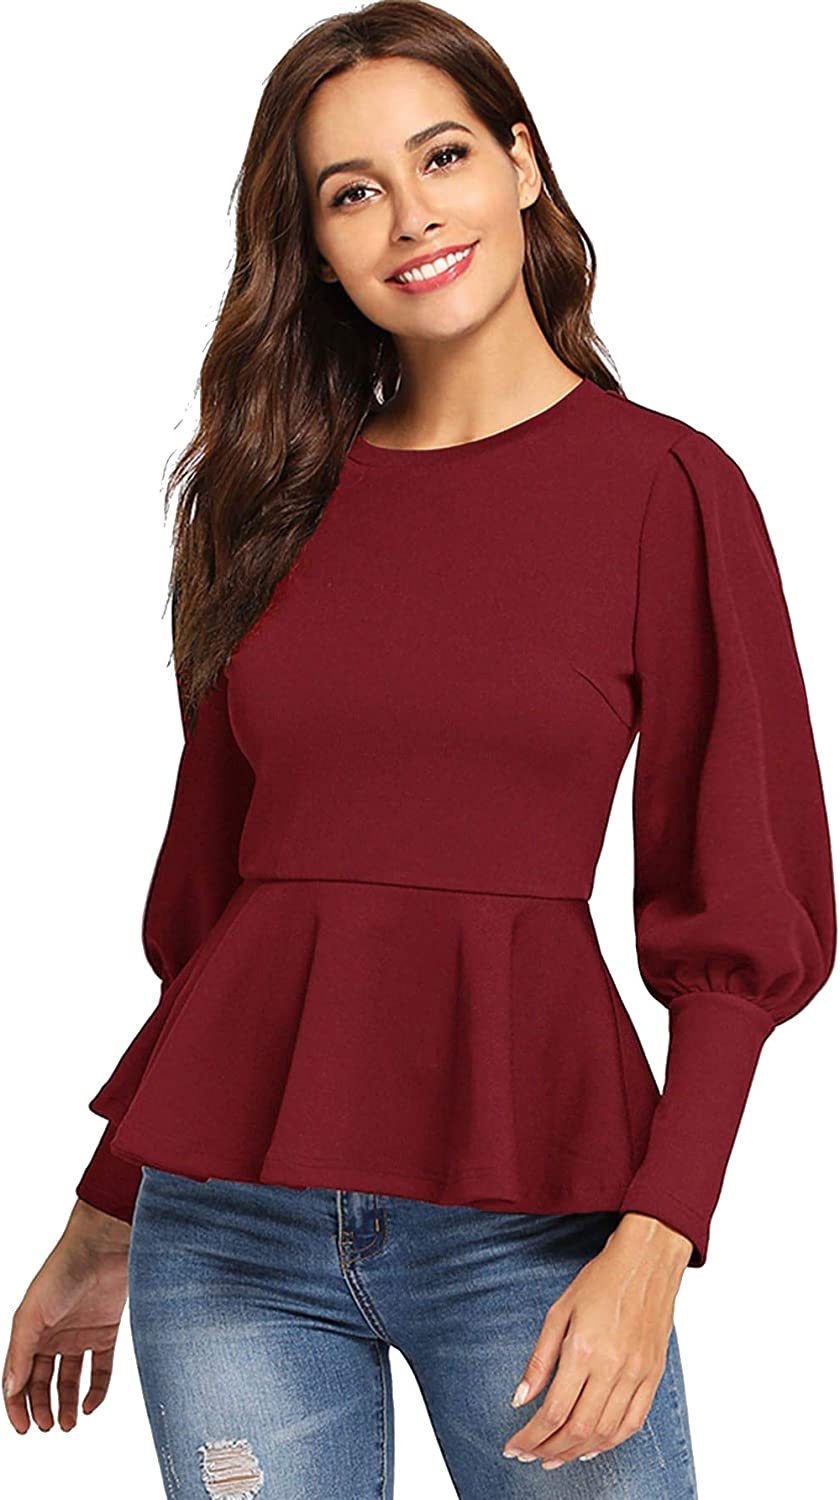 0e44ba8a0c536 Romwe Women's Elegant Fit and Flare Peplum Tee Top Blouses Ribbed ...